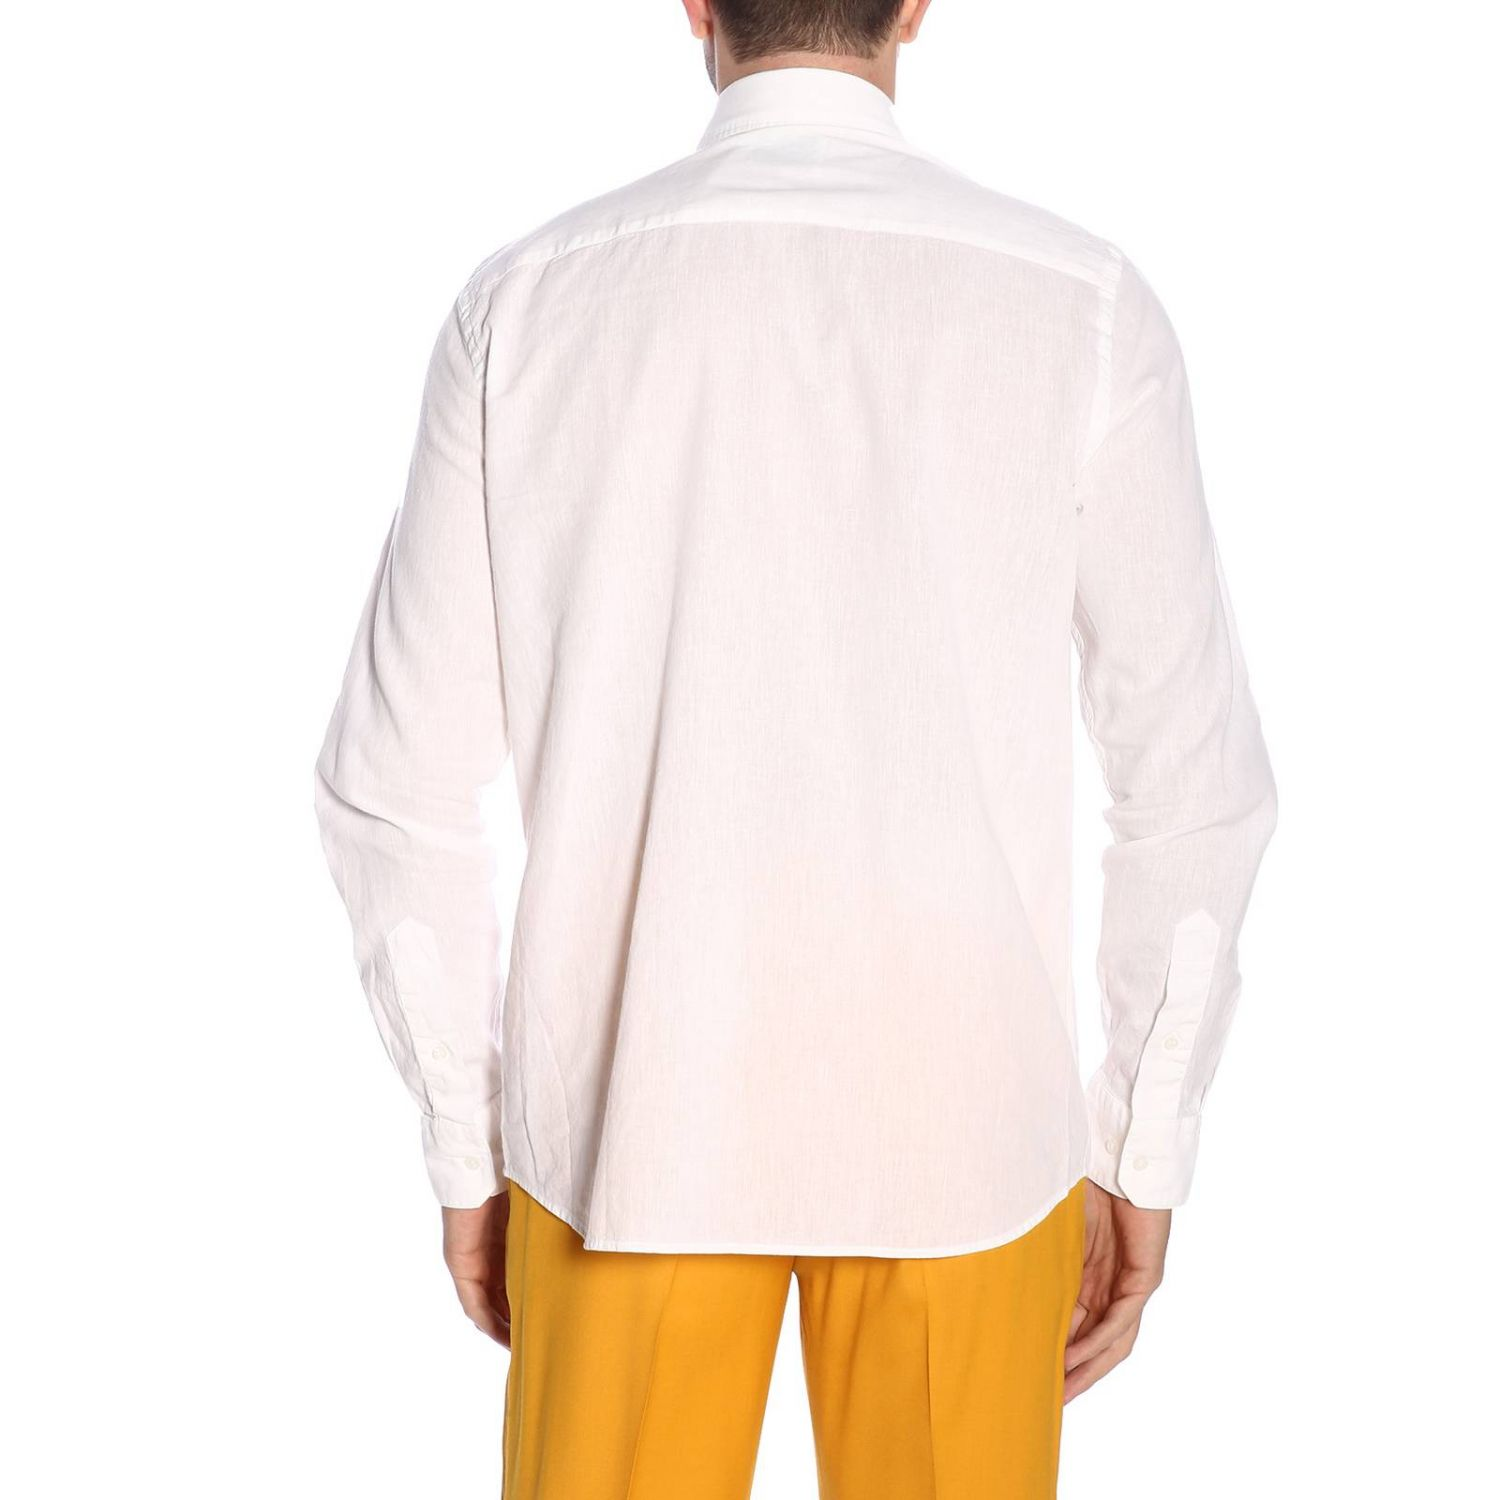 Shirt men Calvin Klein white 3